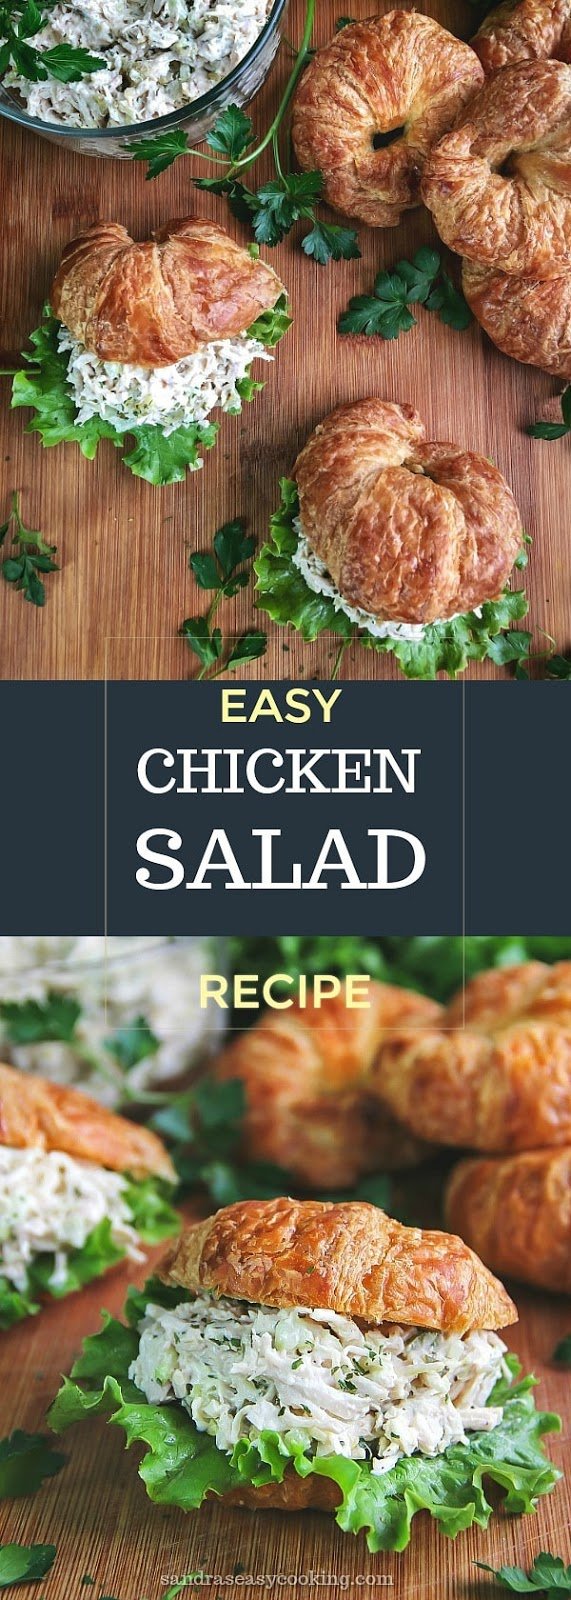 Easy Chicken Salad Recipe - Delicious, simple and perfect for a quick lunch or even a dinner. #recipe #food #homemade #sandwich